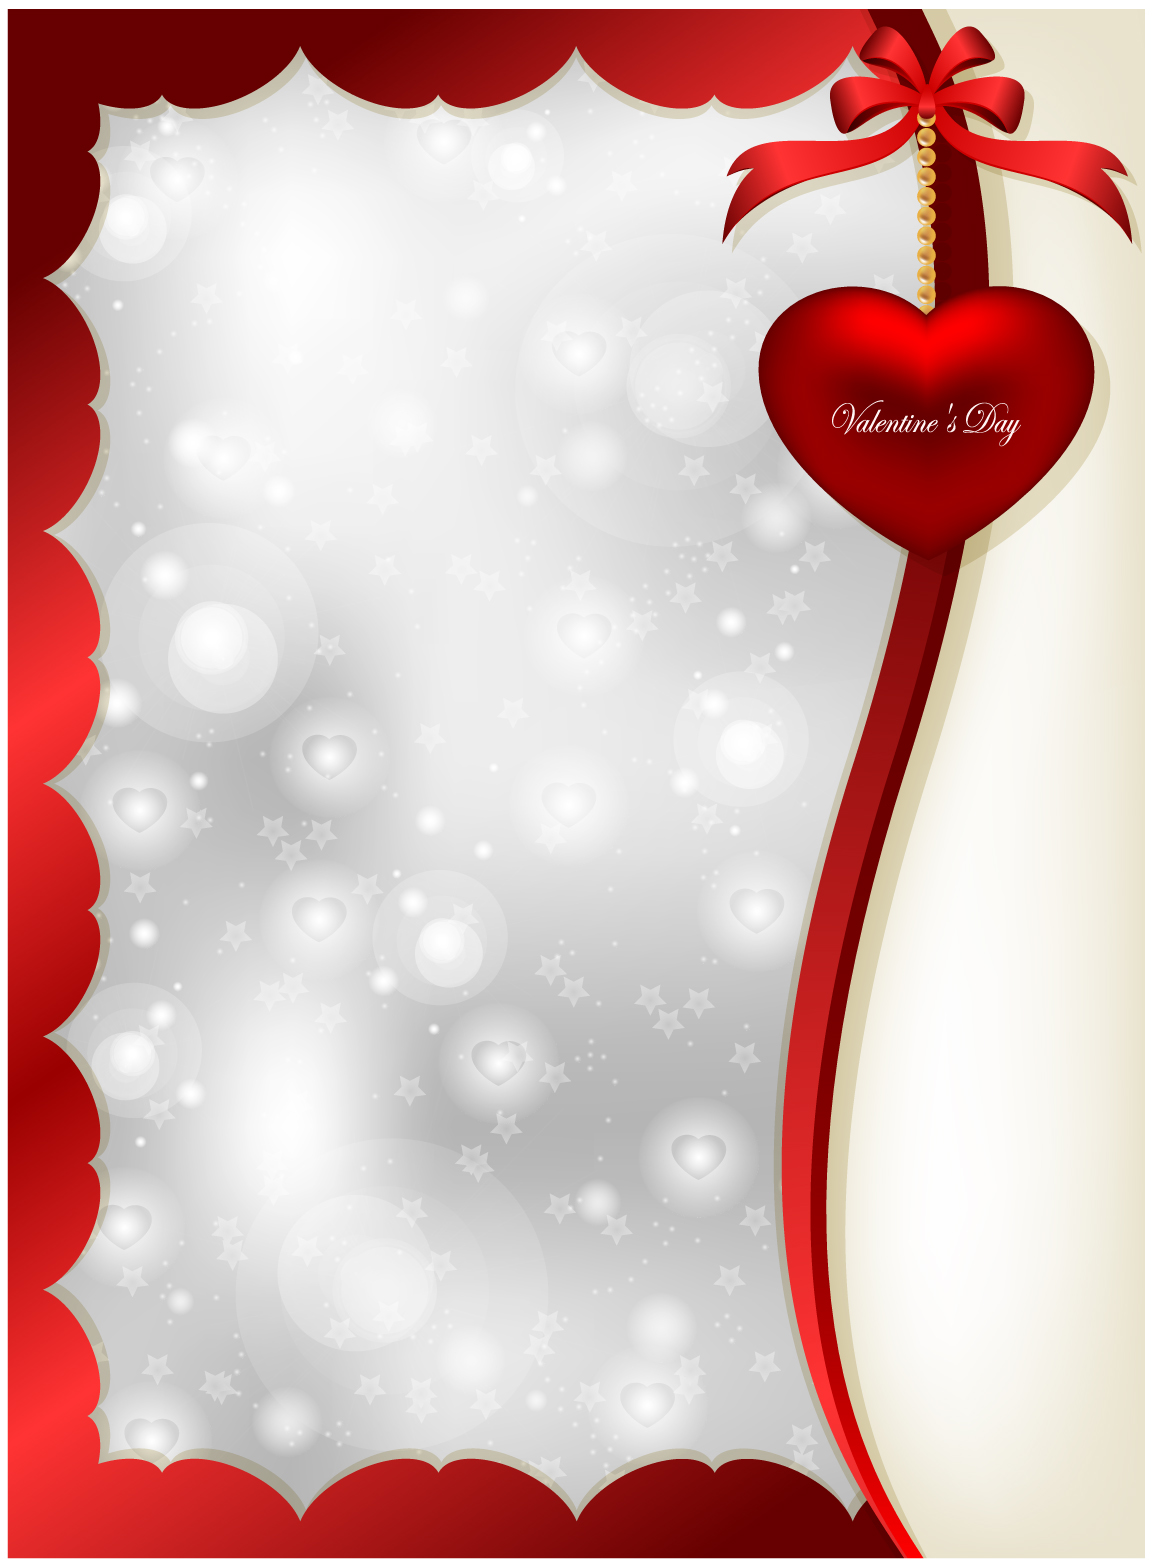 wallpapers world feb 14 lovers day greetings card free